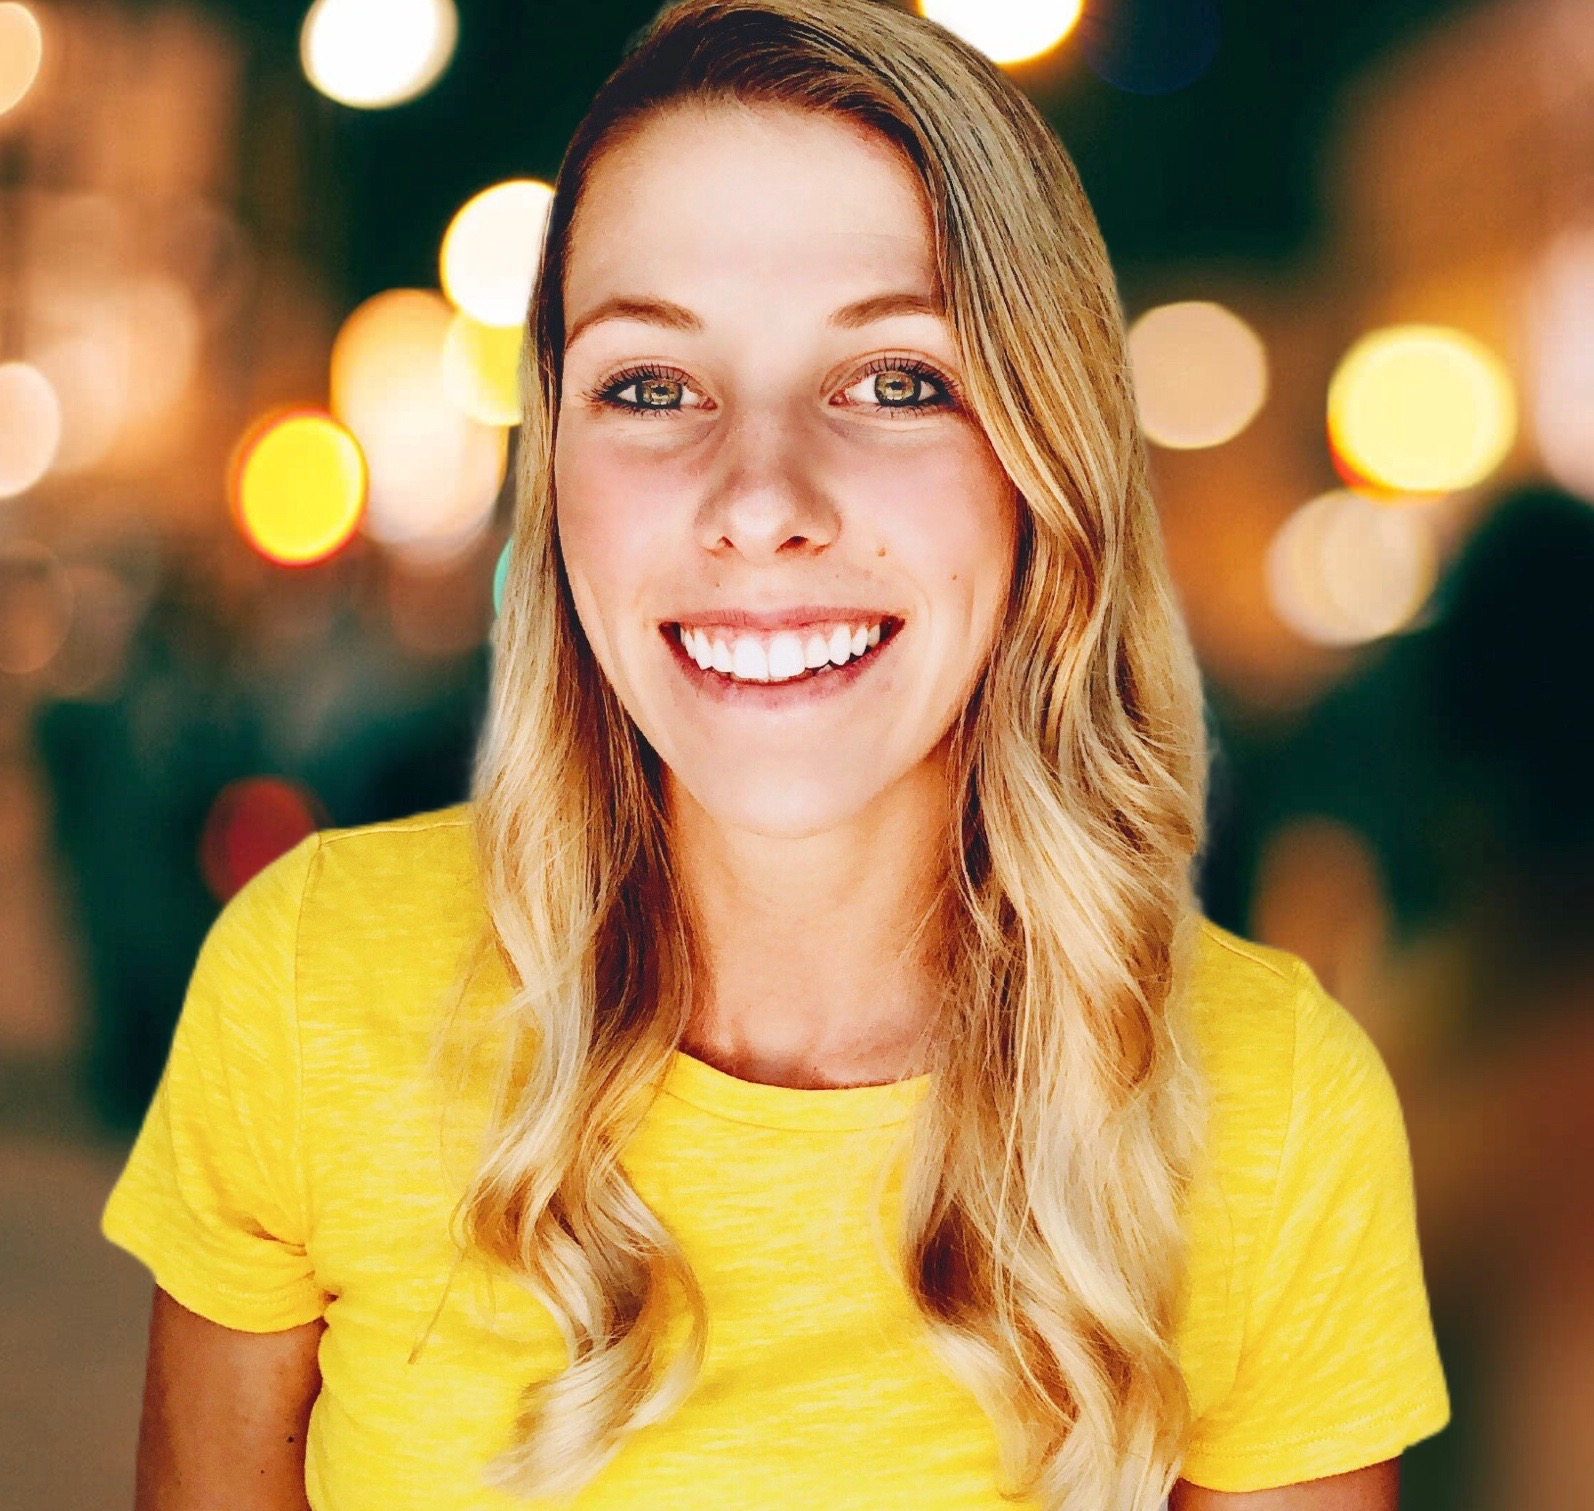 It's nice to meeT you! - I'm Lex and I'm so excited you're here. Your brand needs to live up to its potential with a dreamy website that converts. Having someone behind your brand who cares just as much as you can make all the difference.